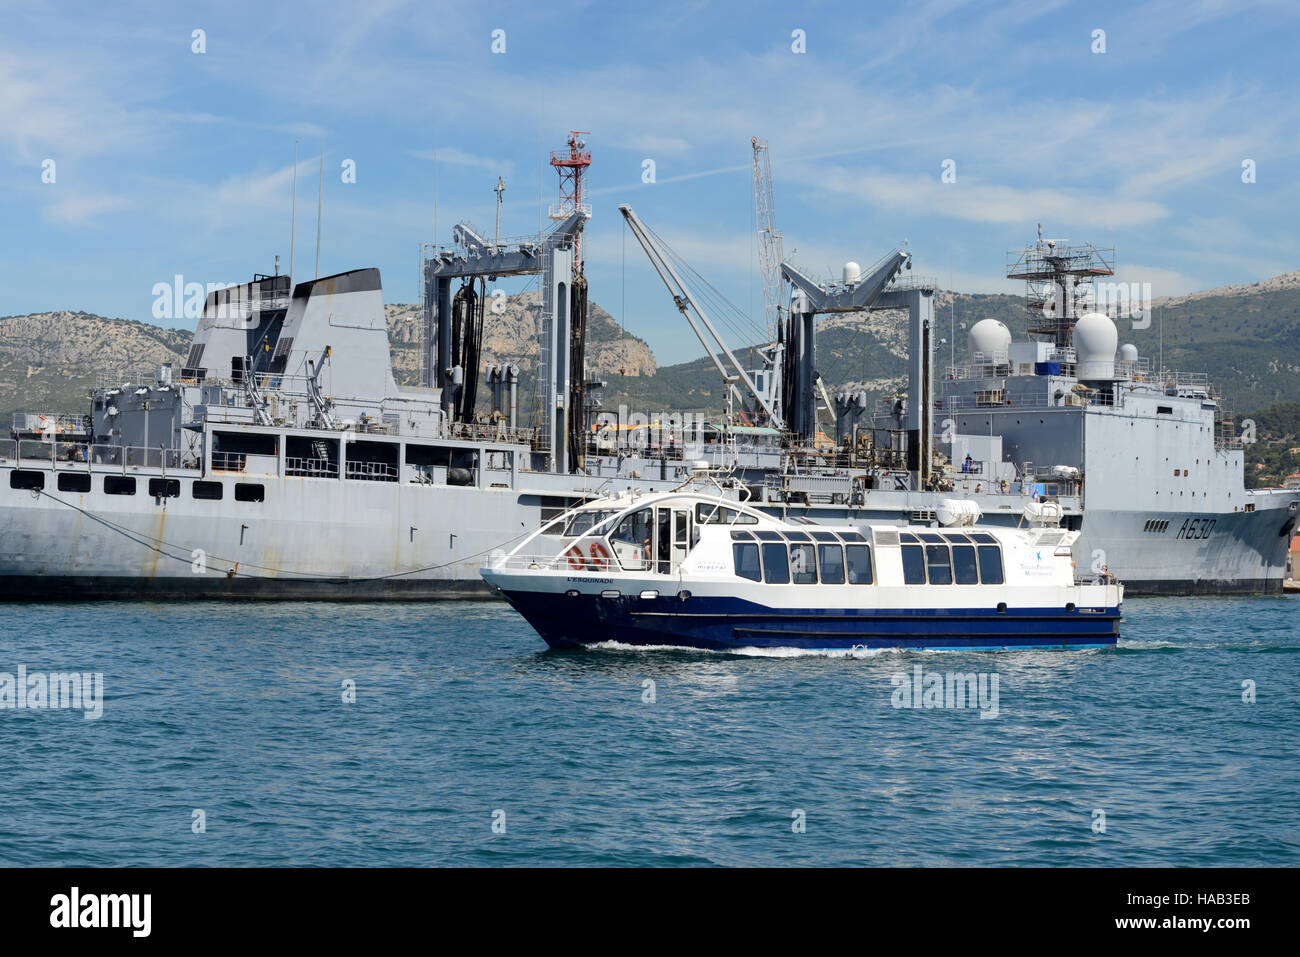 Ferry Boat Cruises Past the Marne Frigate or Warship of the French Navy in the Port of Toulon Provence France - Stock Image